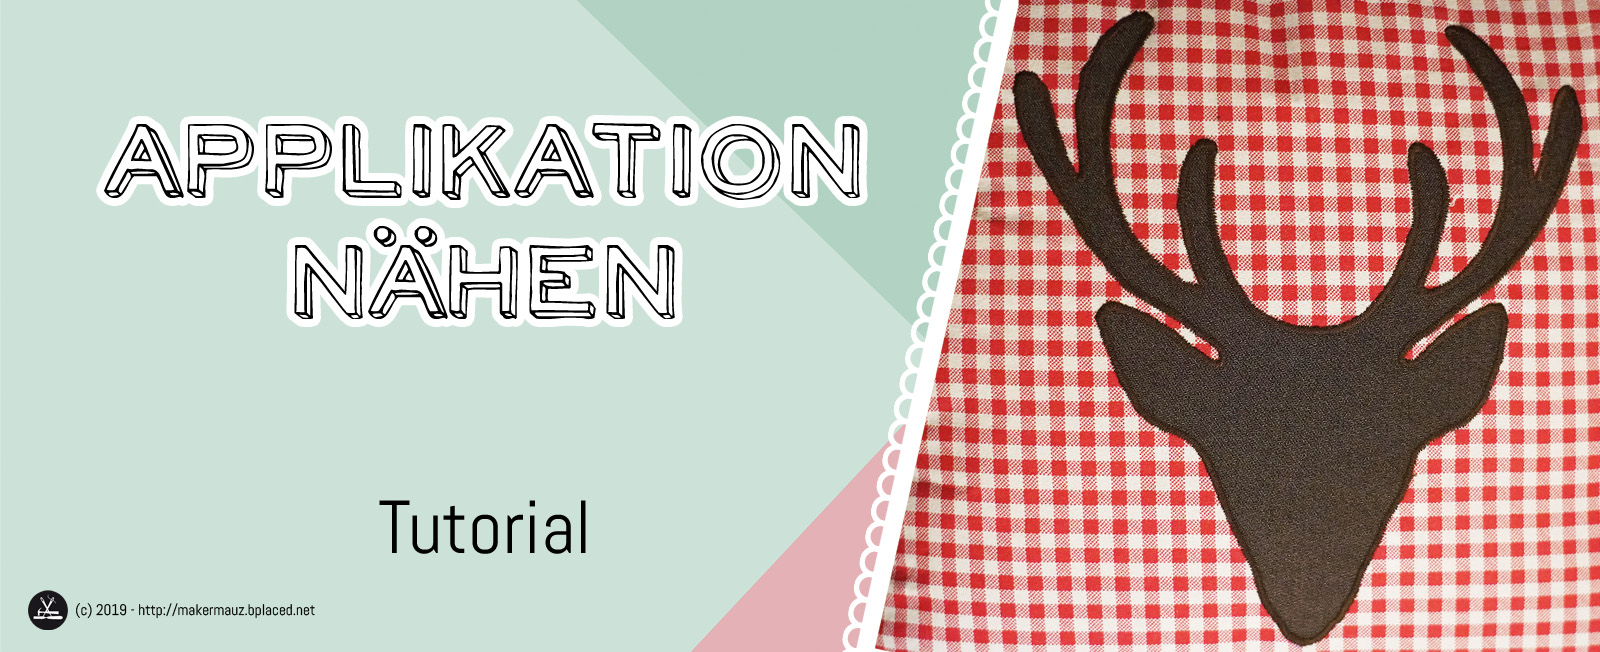 Applikation nähen Tutorial